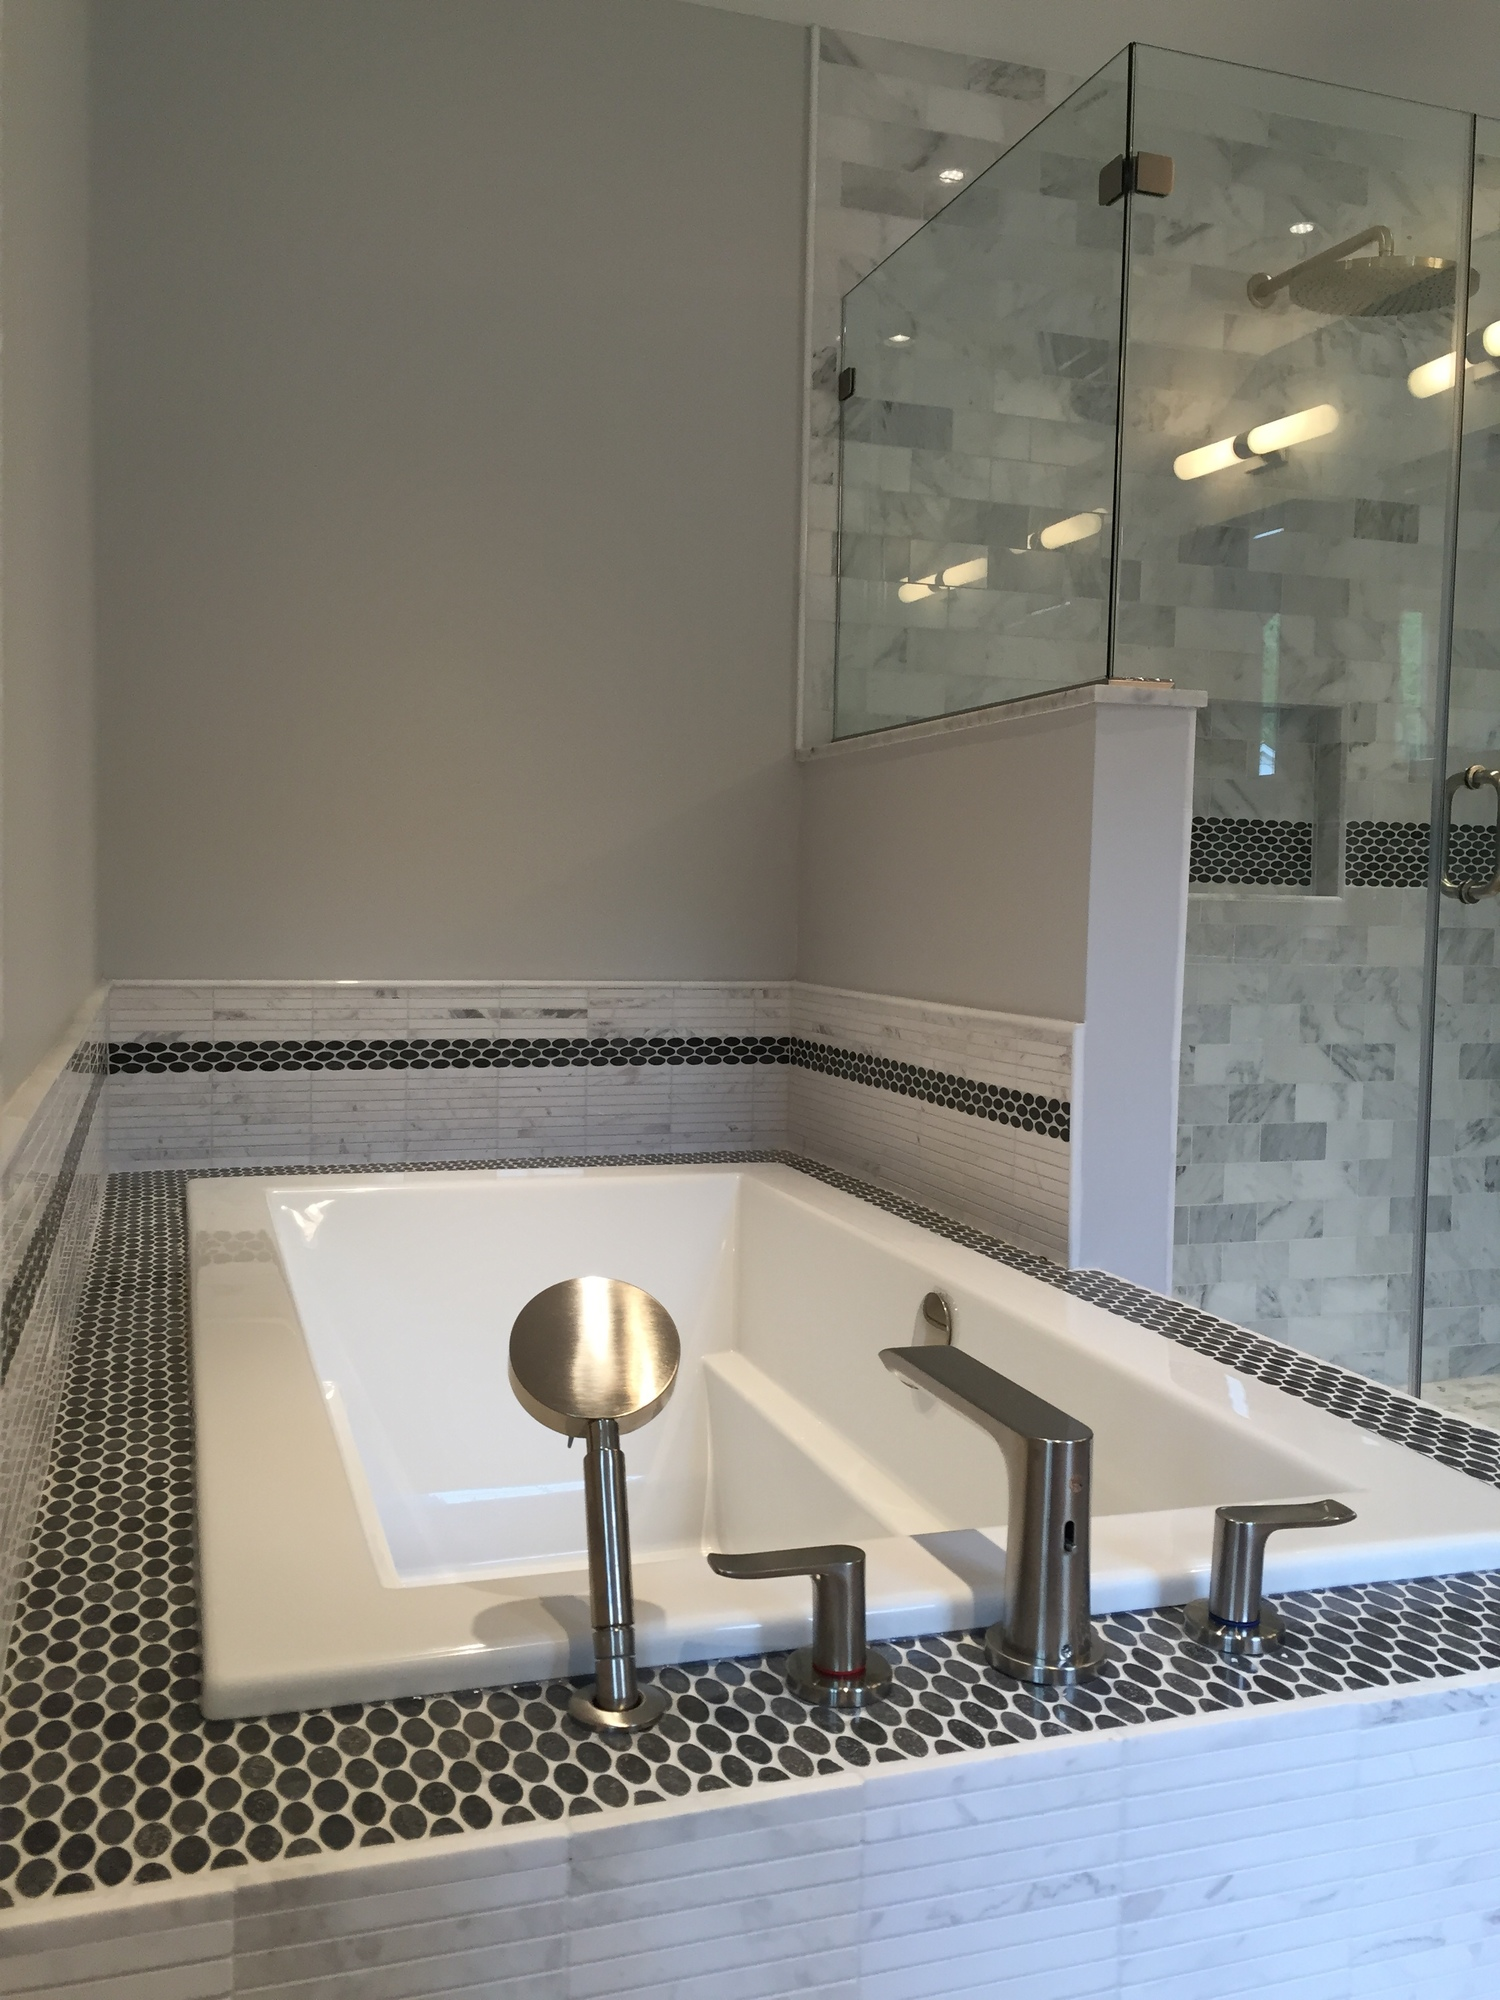 Home Remodeling Additions Kitchens Basements Bathrooms And Decks - Bathroom remodel must haves